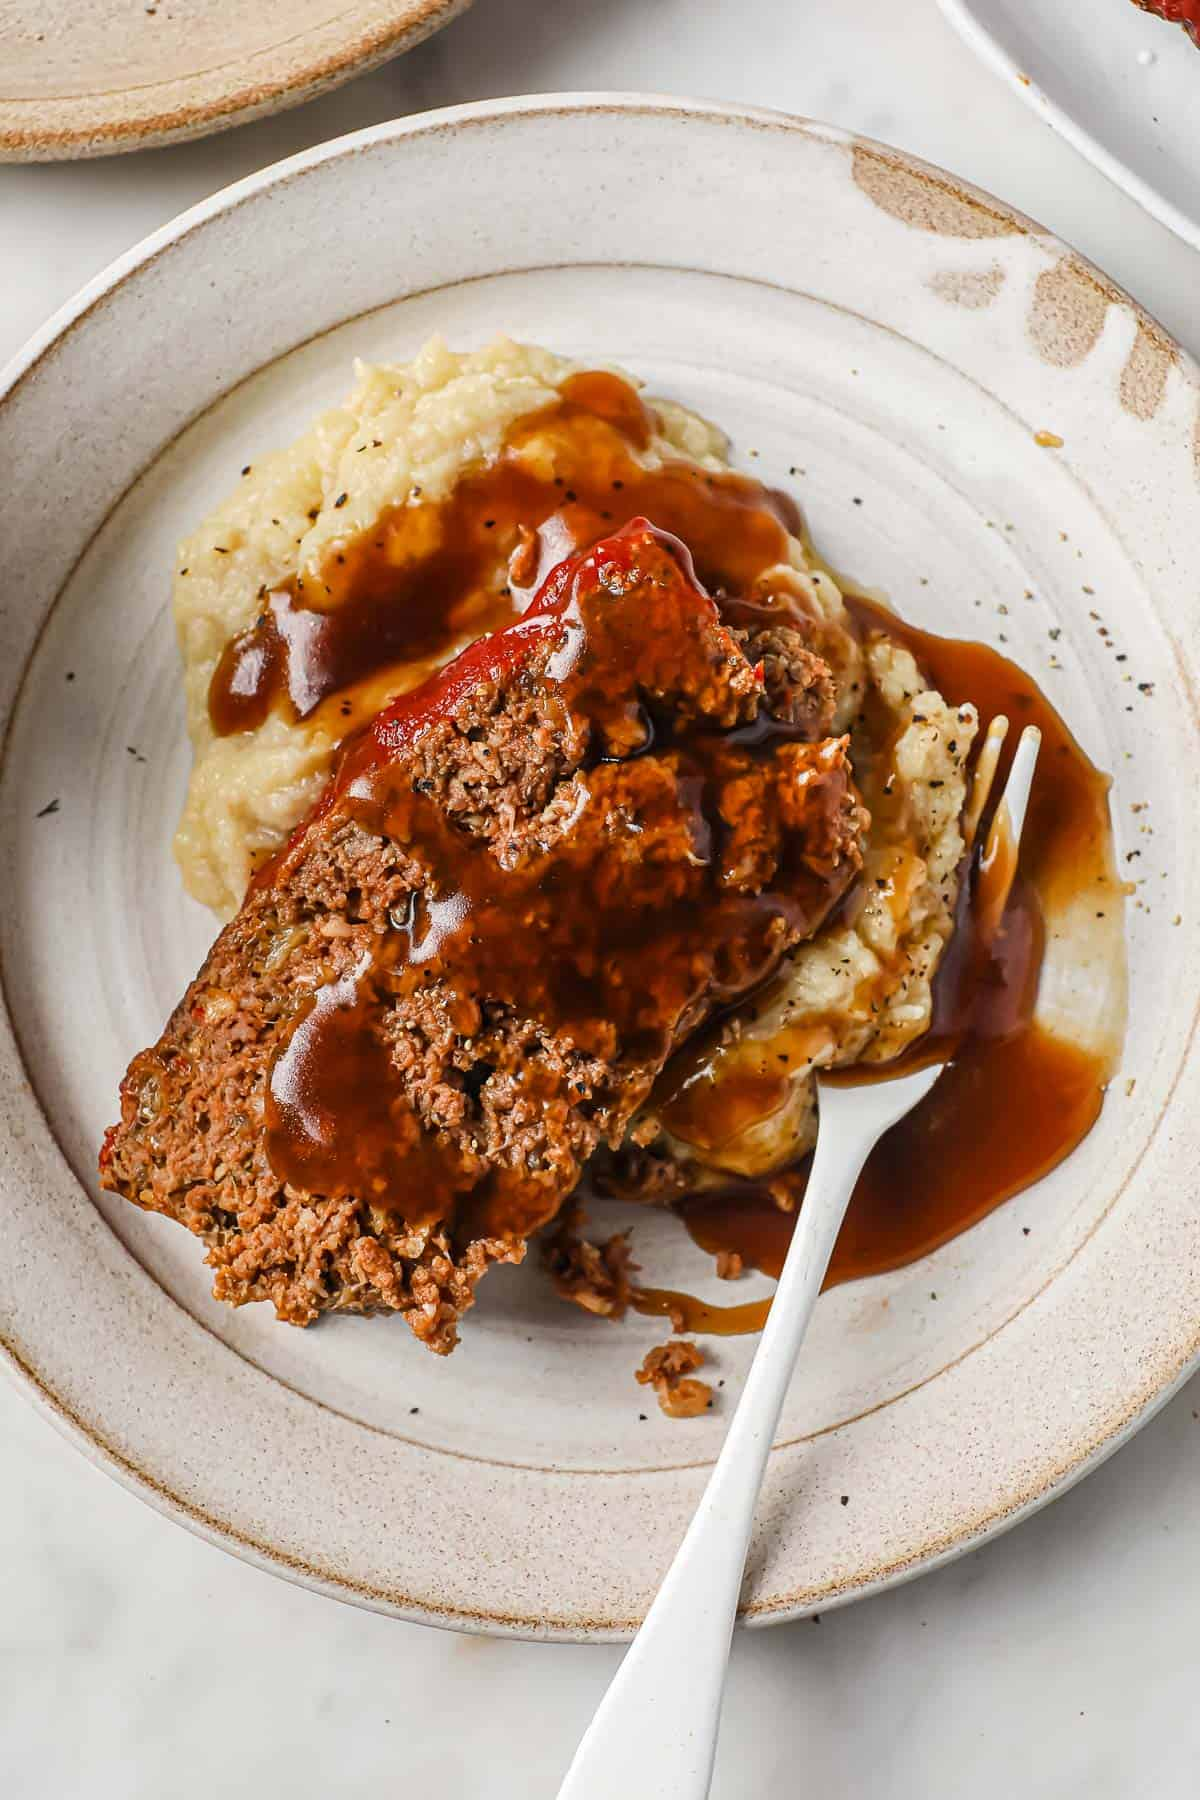 meatloaf with cauliflower mash and gravy, served on a white plate